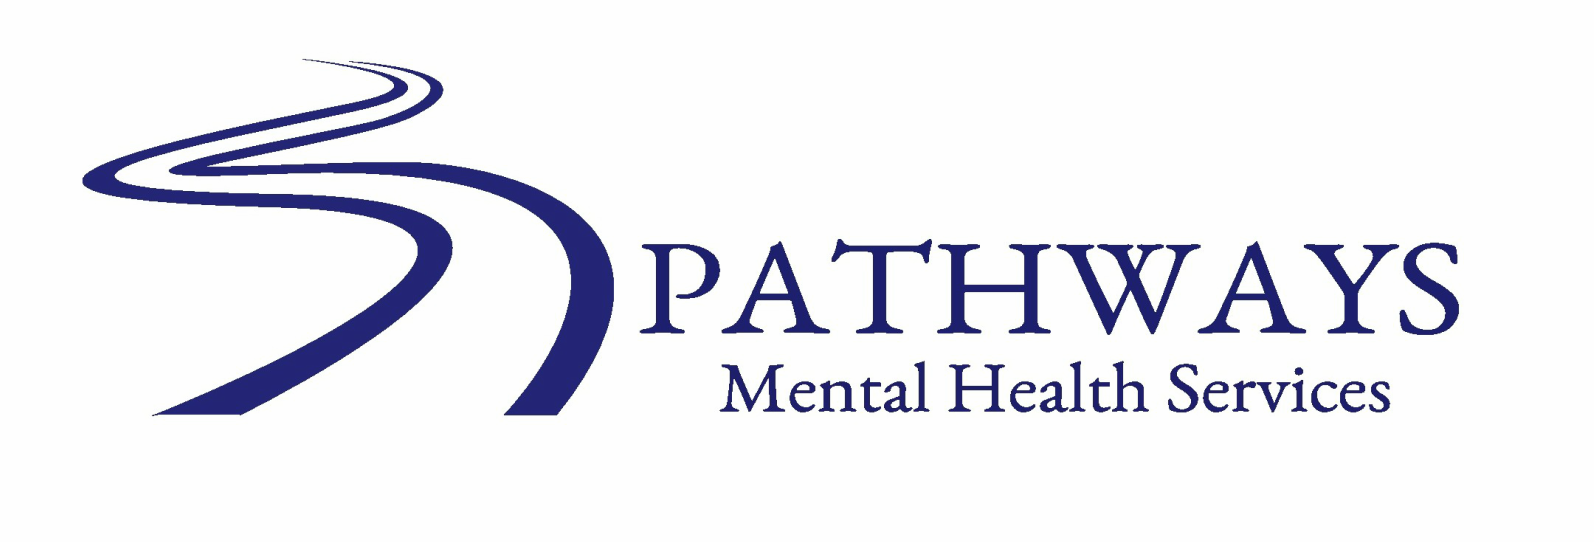 Pathways Mental Health Services